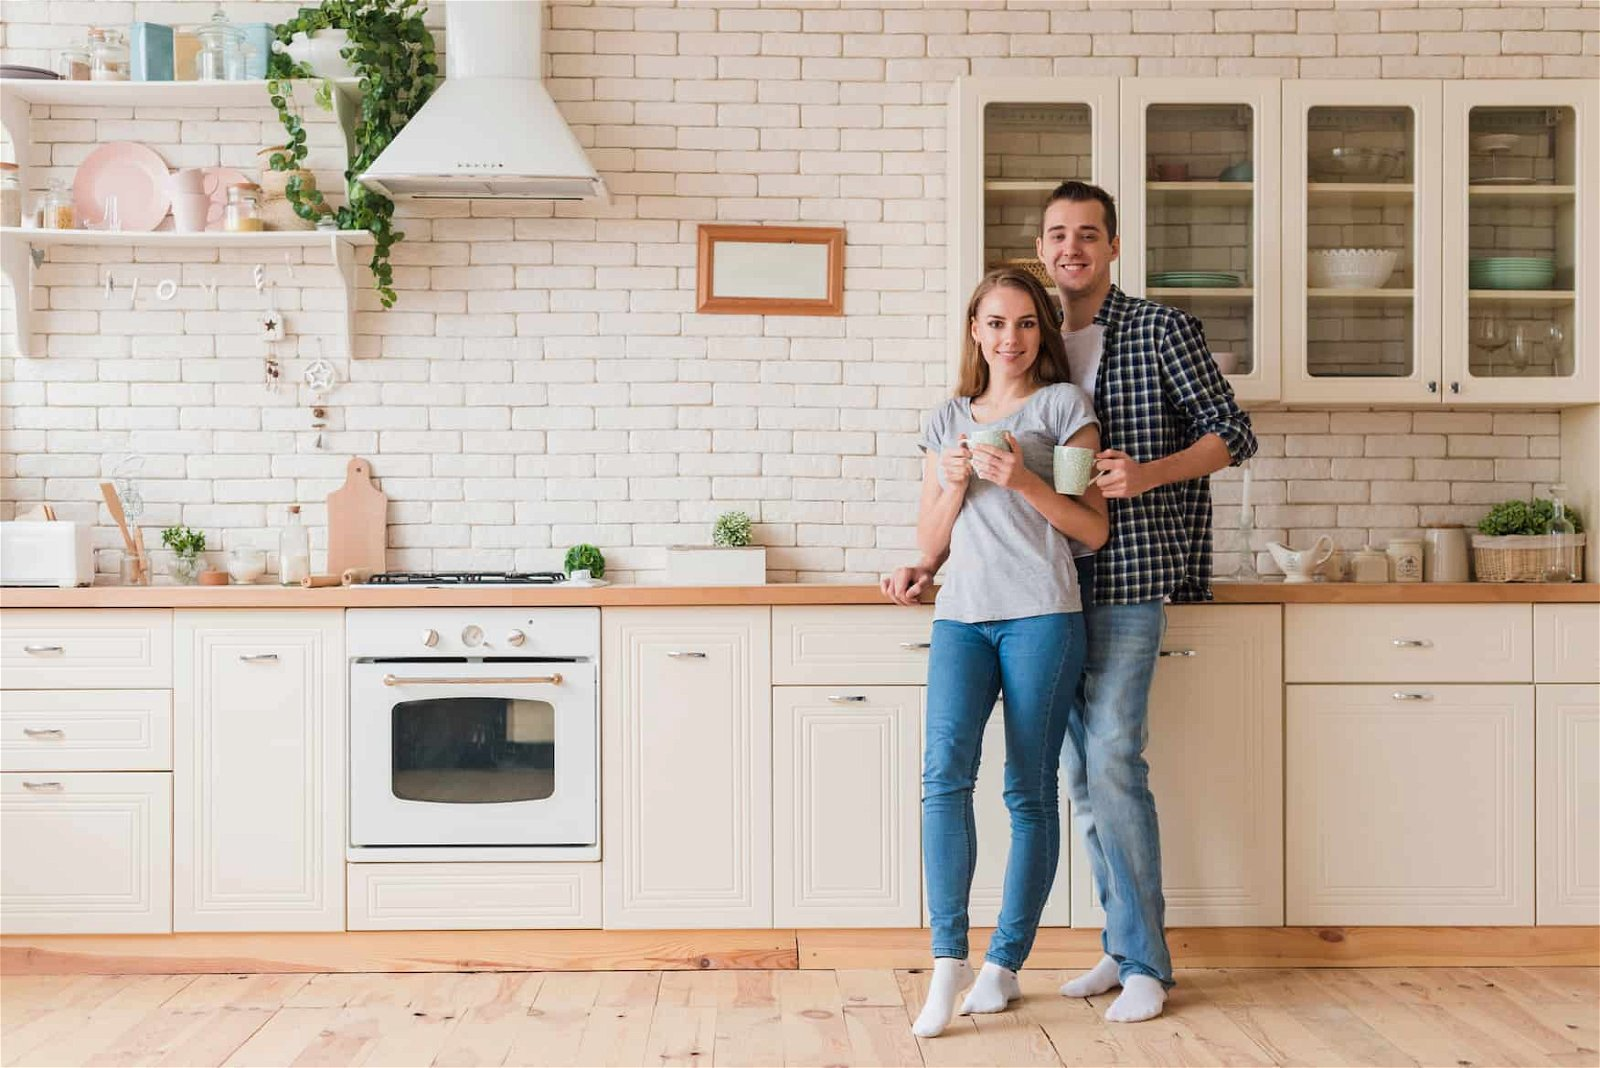 Most Popular Kitchen Cabinet Colors and Styles in 2021